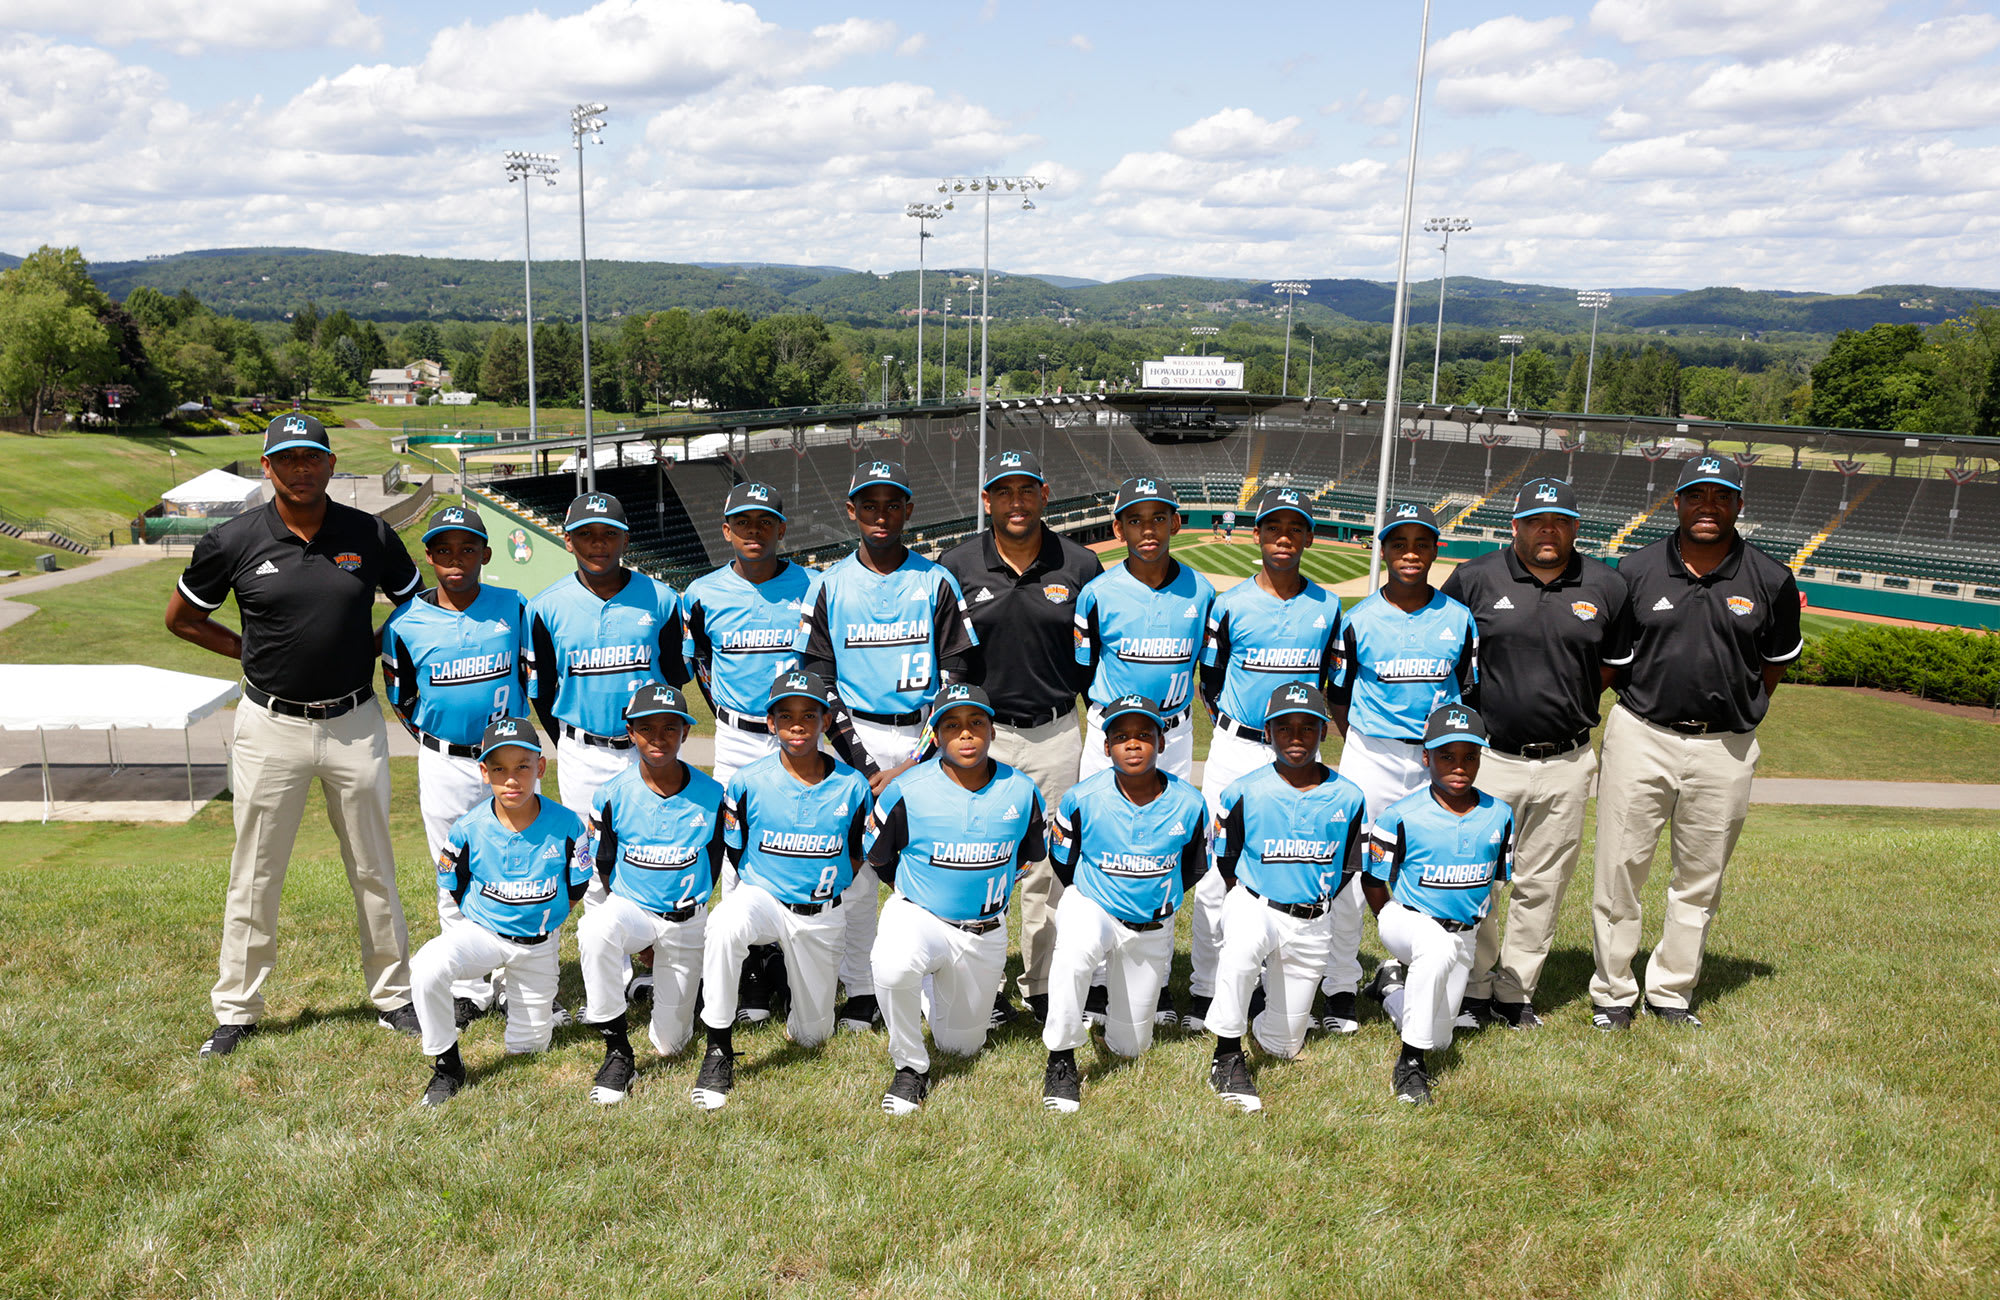 Sweet 16: Little League Baseball® World Series Teams at a